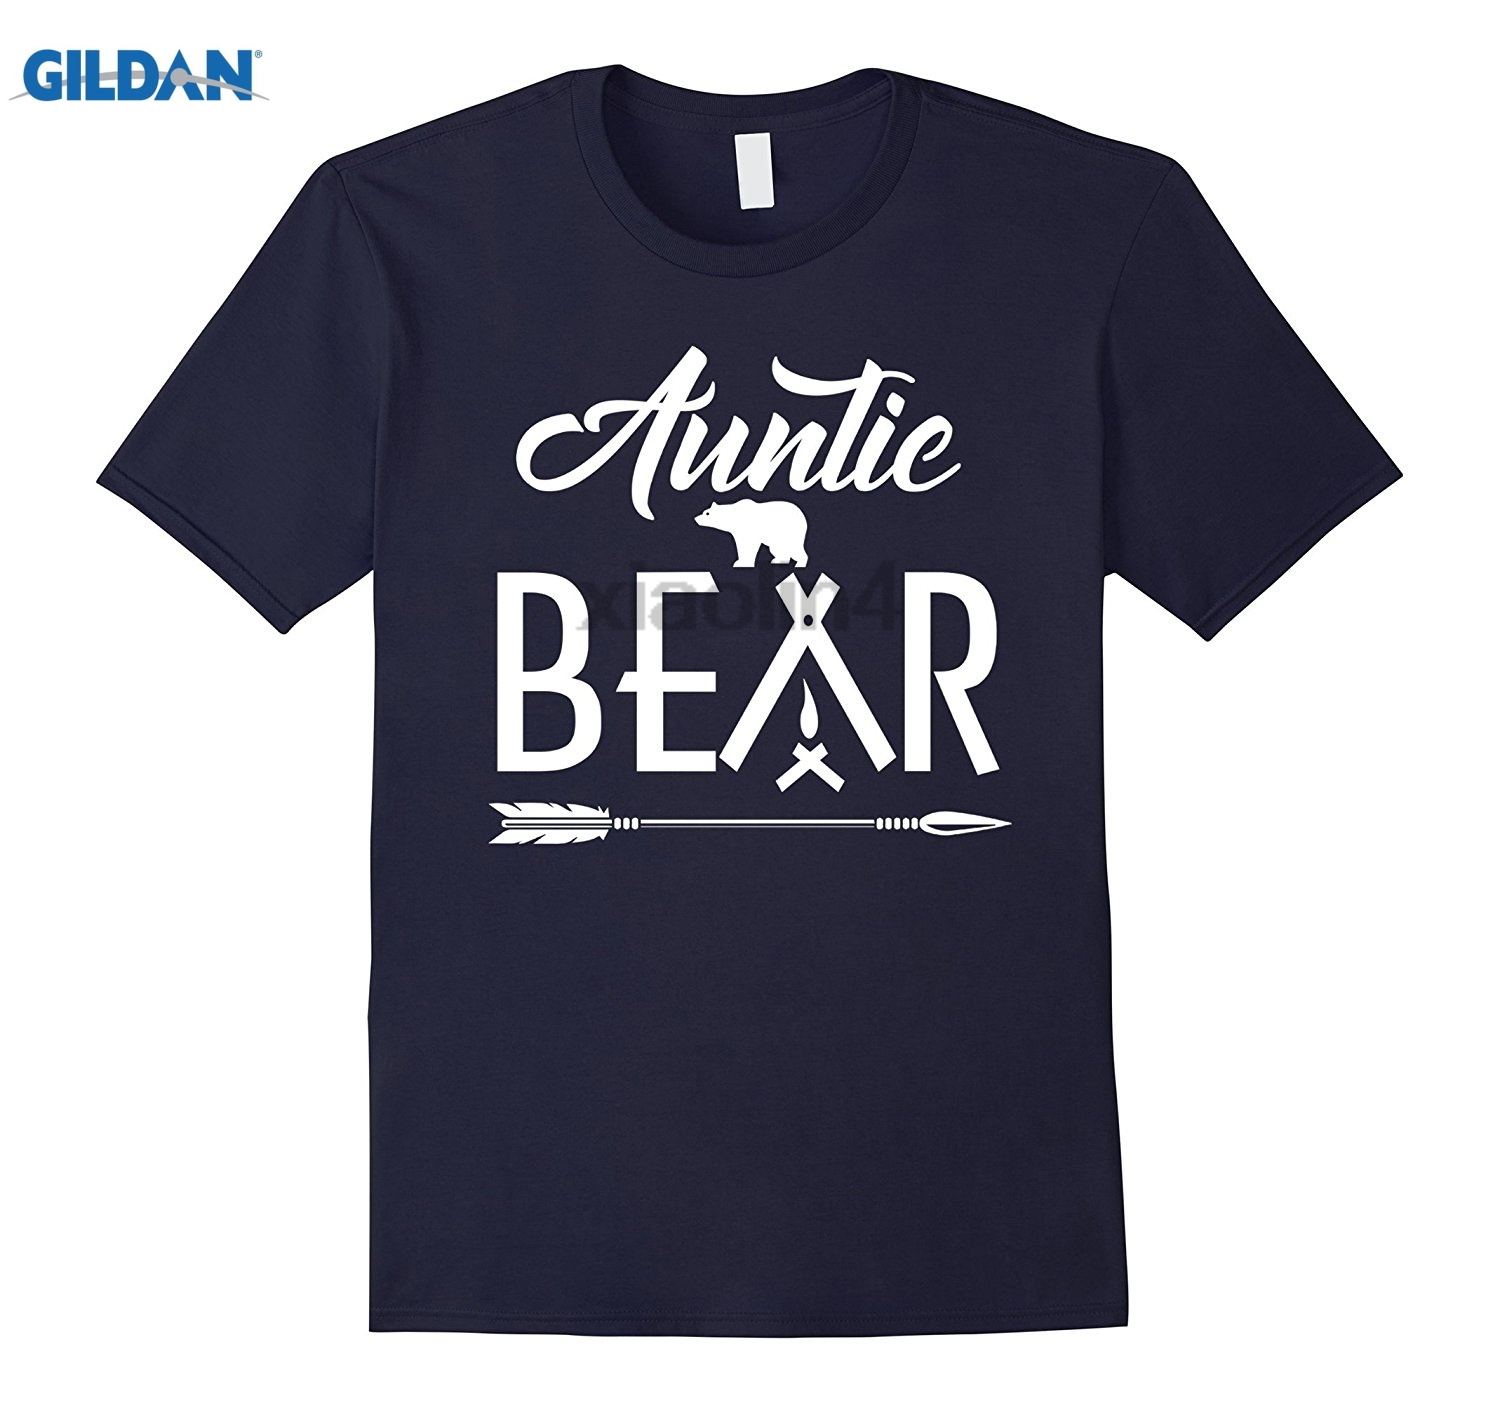 GILDAN Aunt shirt Auntie Bear T-shirt New 2018 Mens Hot Fashion Short-Sleeved Rider T-Shirts Hot Womens T-shirt